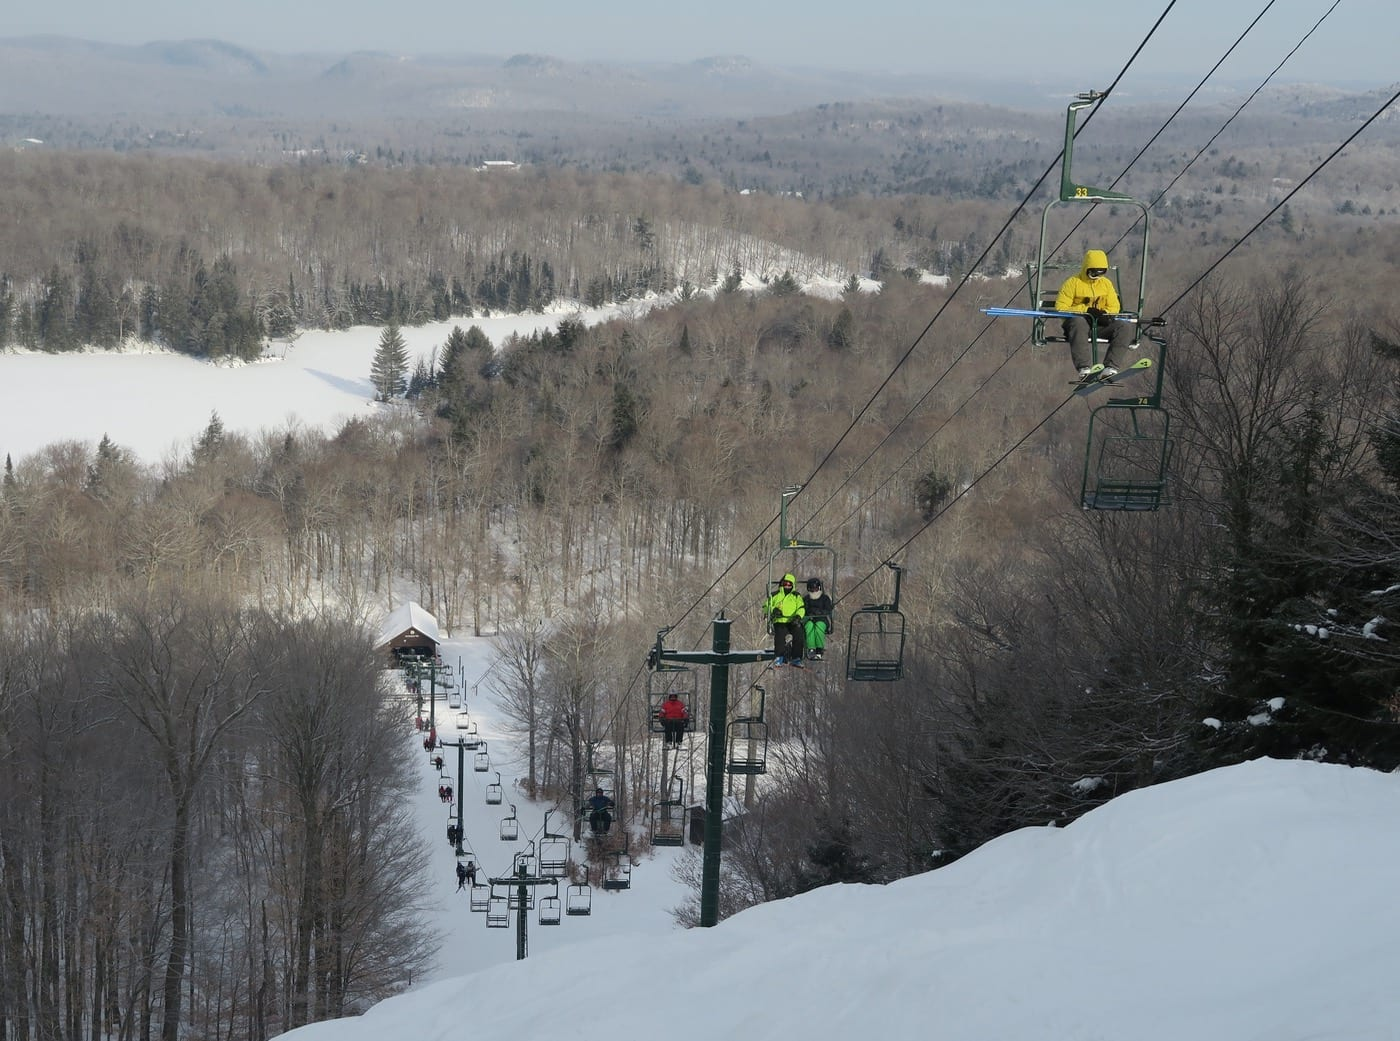 5-DAY SKI PASS  Donated by: MCCAULEY MOUNTAIN  Valued at: $119  Buy It Now: $70